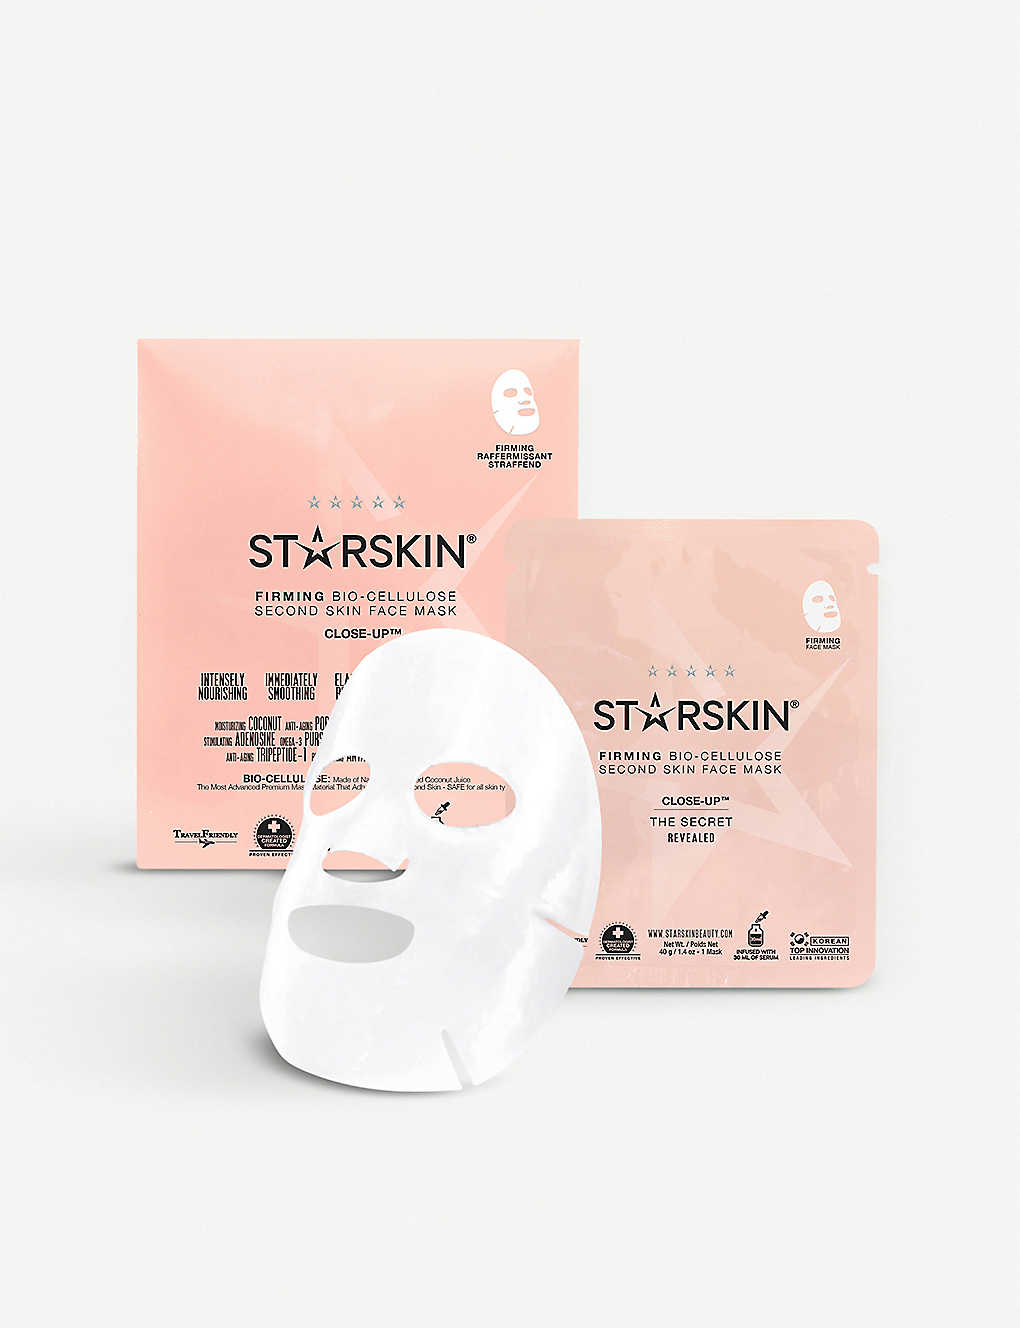 STARSKIN: Close-Up - Firming Coconut Bio-Cellulose Second Skin Face Mask